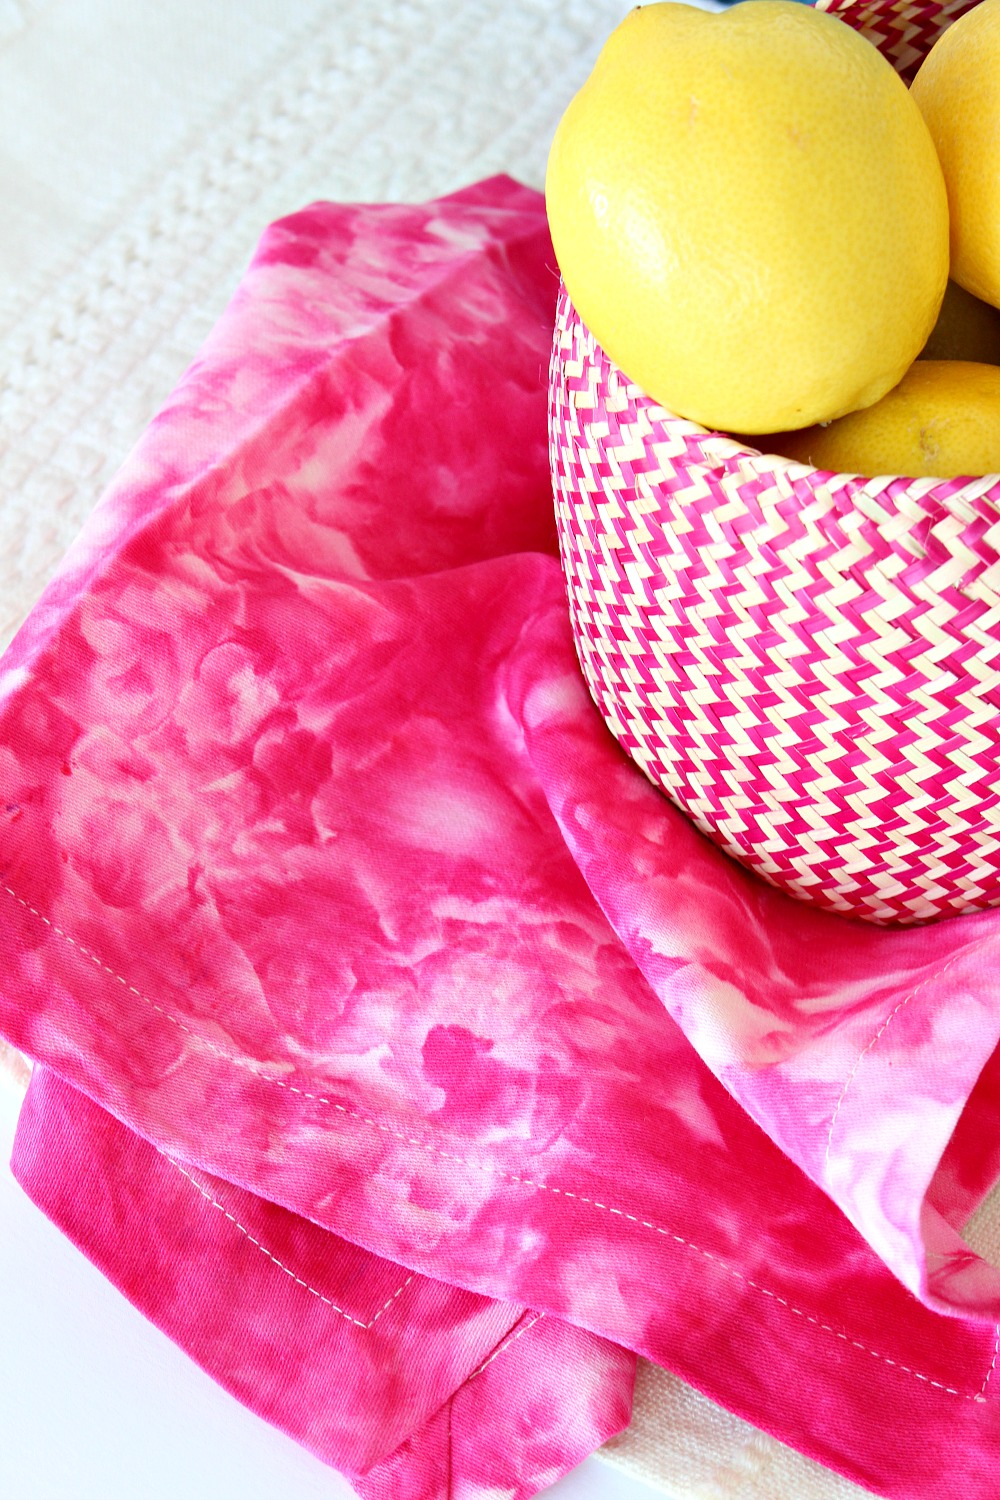 Fuschia Ice Dyed Napkin and Basket of Lemons